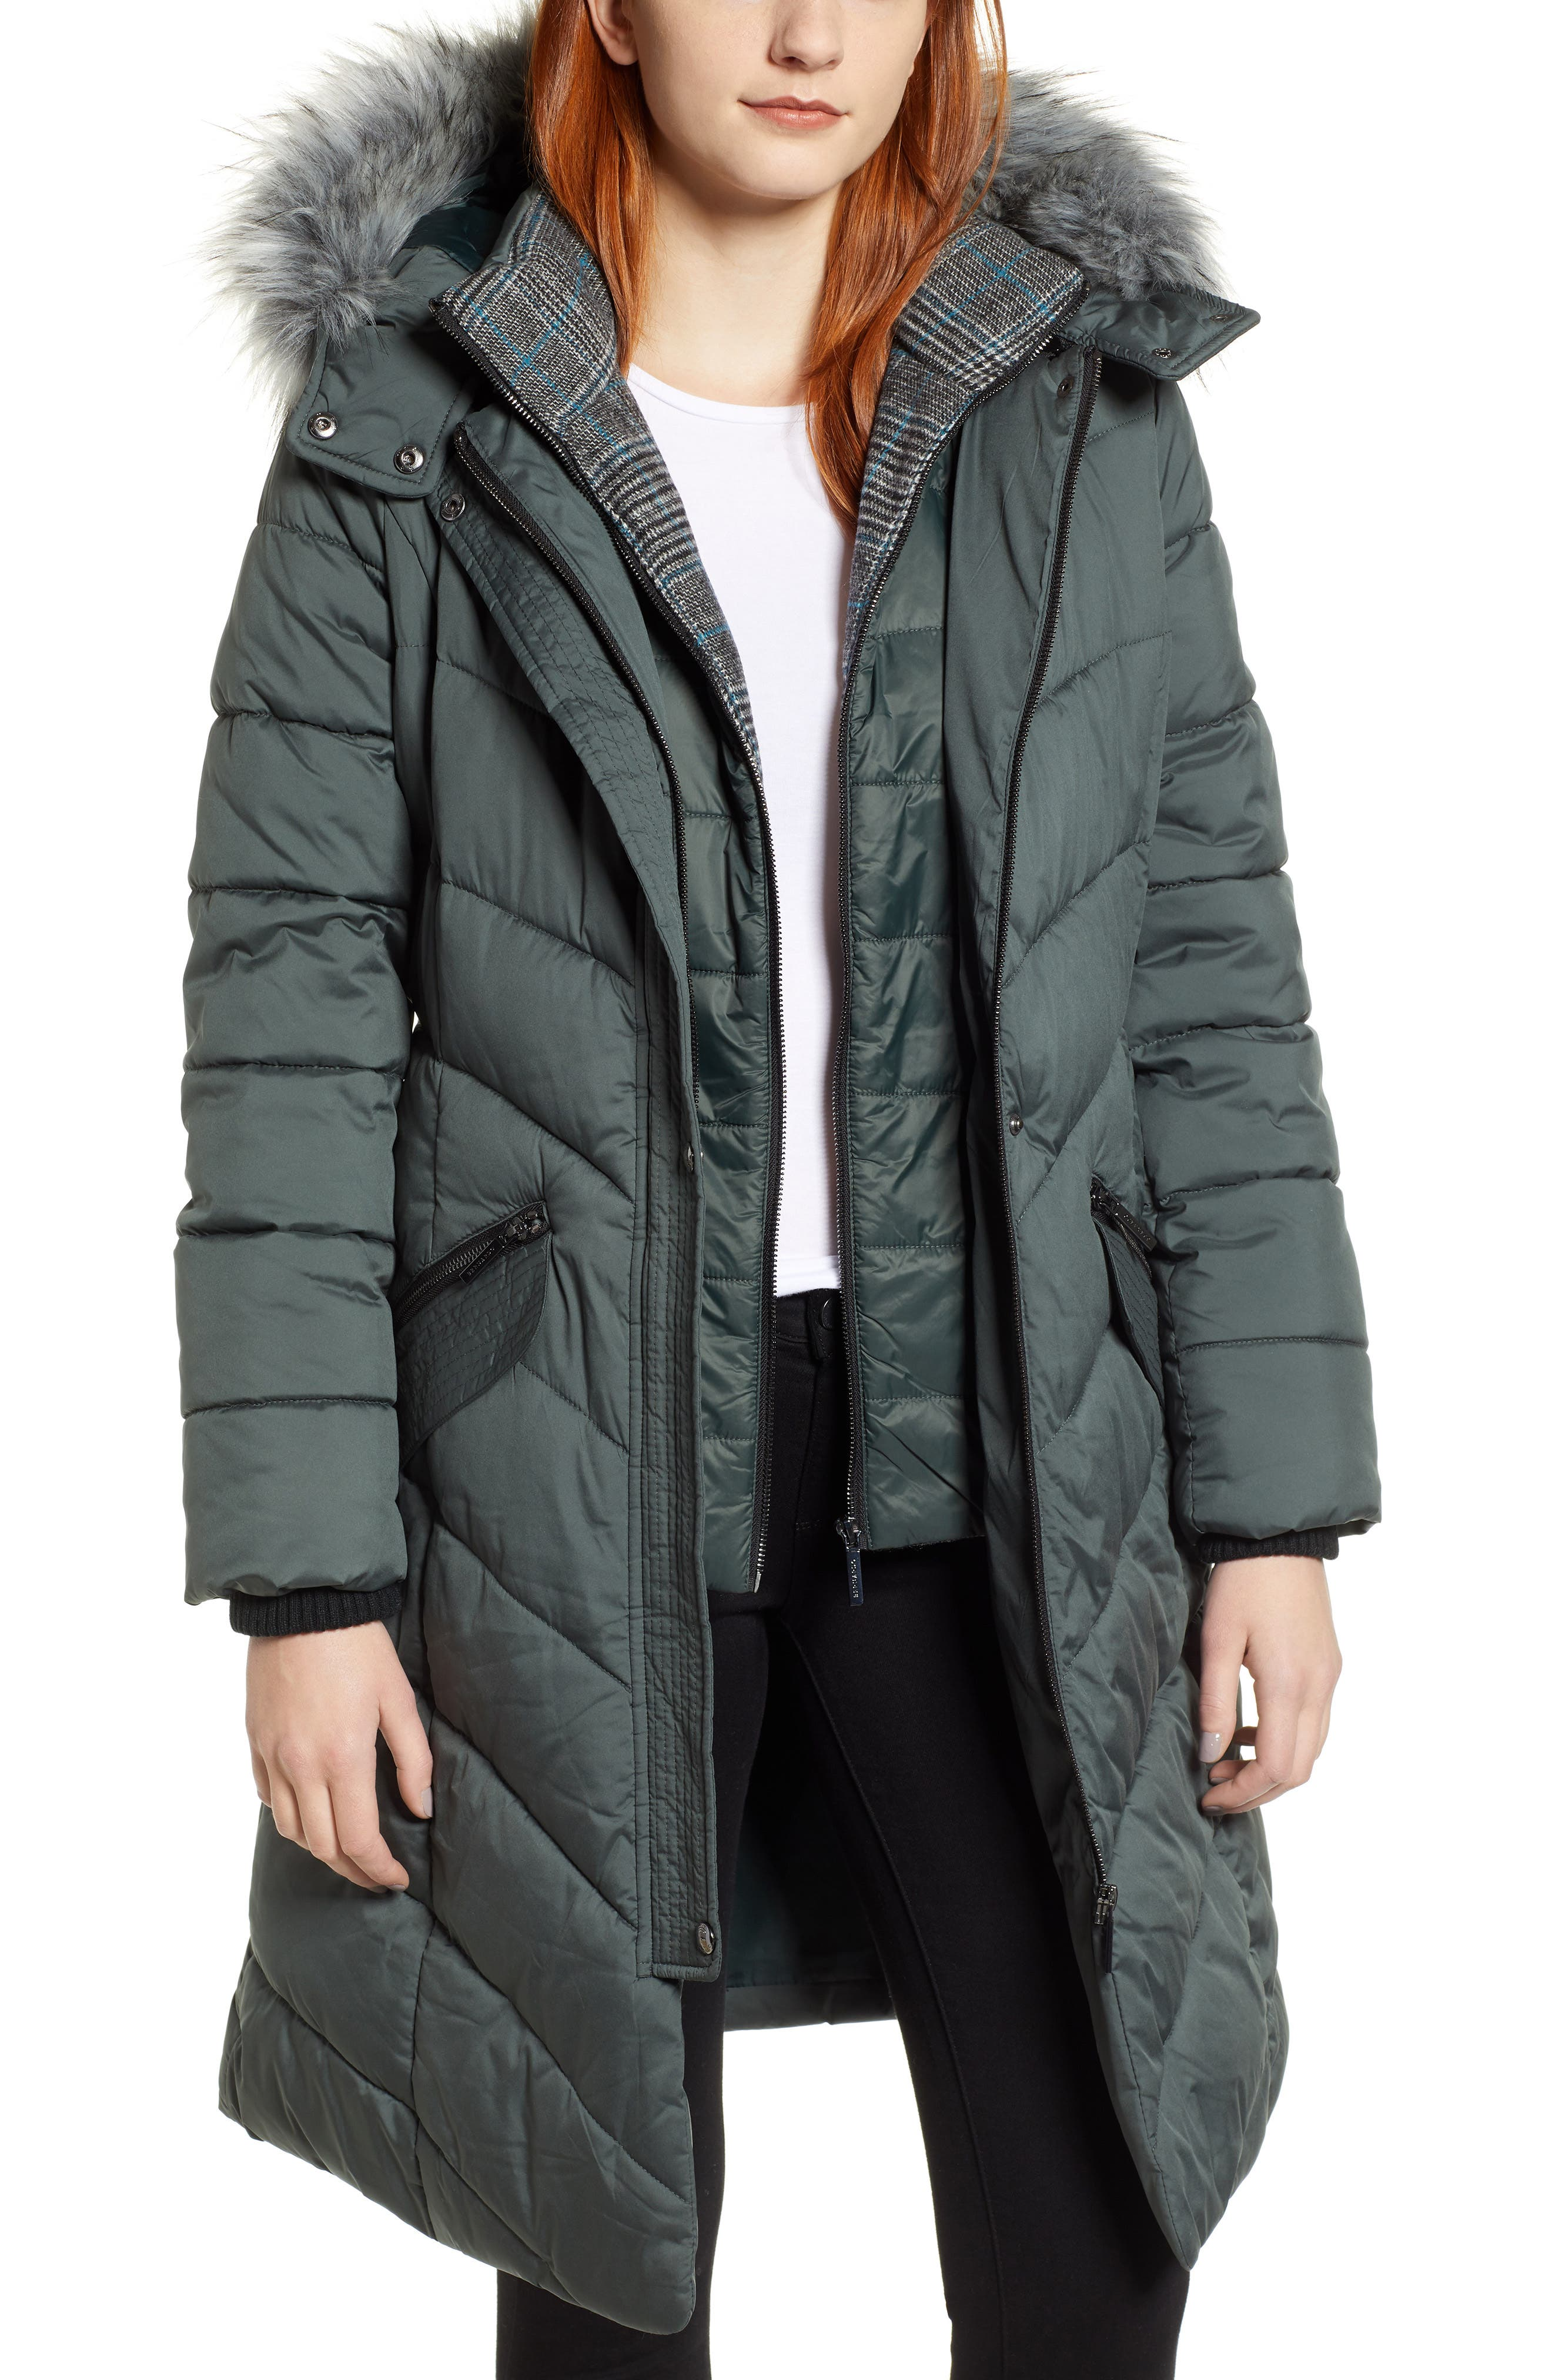 Puffer Jacket with Faux Fur Trim,                             Main thumbnail 1, color,                             DARK MOSS